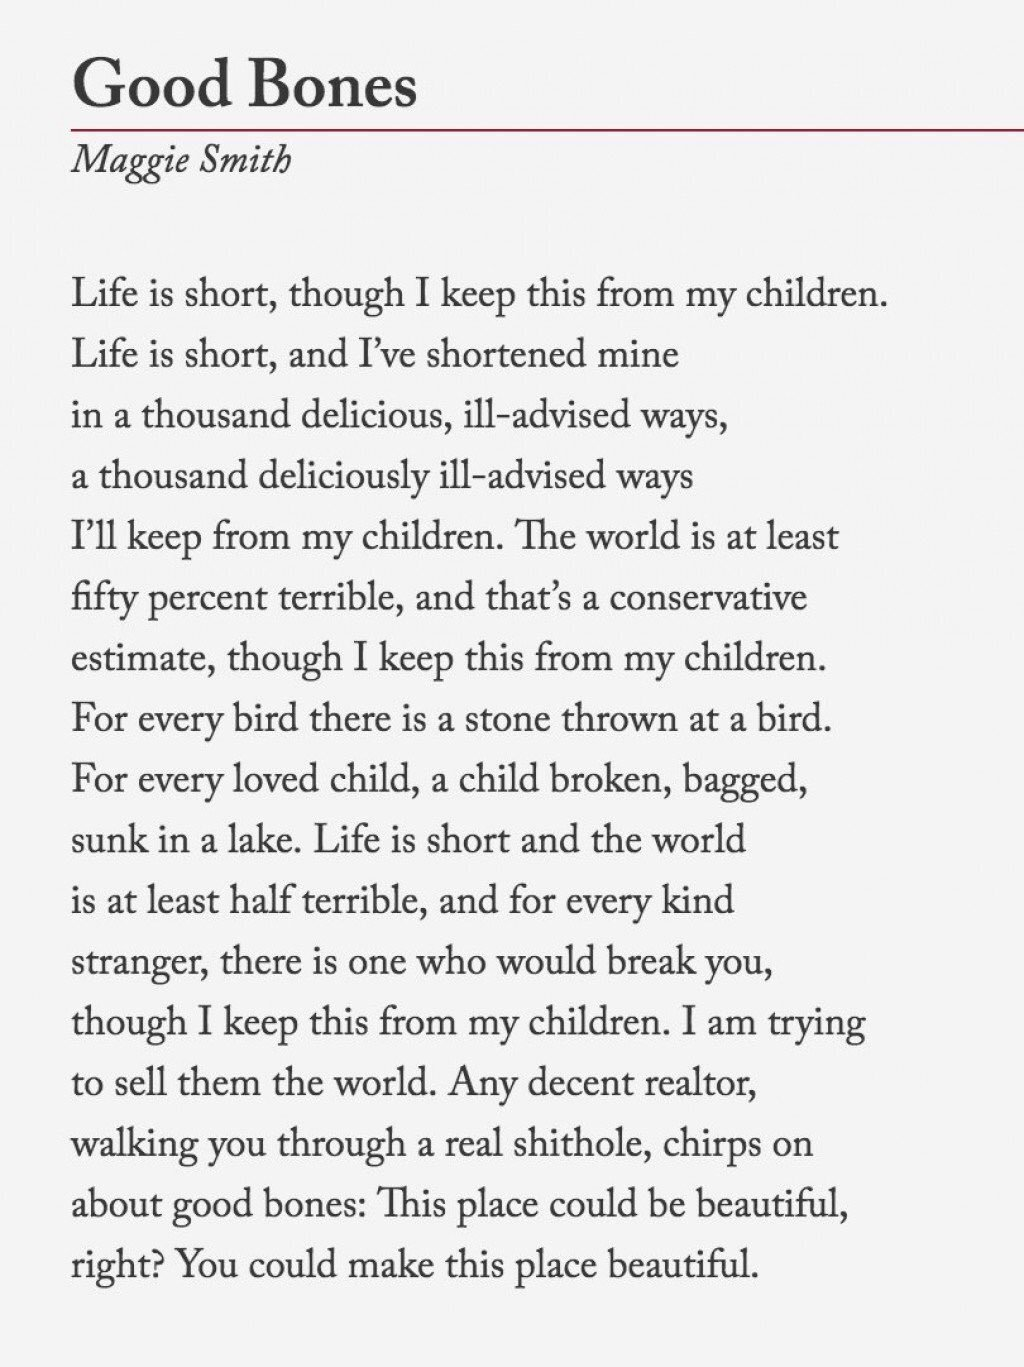 an analysis of as i grew older a poem by langston hughes As i grew older what do the words of the title suggest to you the words suggest this poem is going to be about how his perspective of the world has changed throughout his life after growing up.